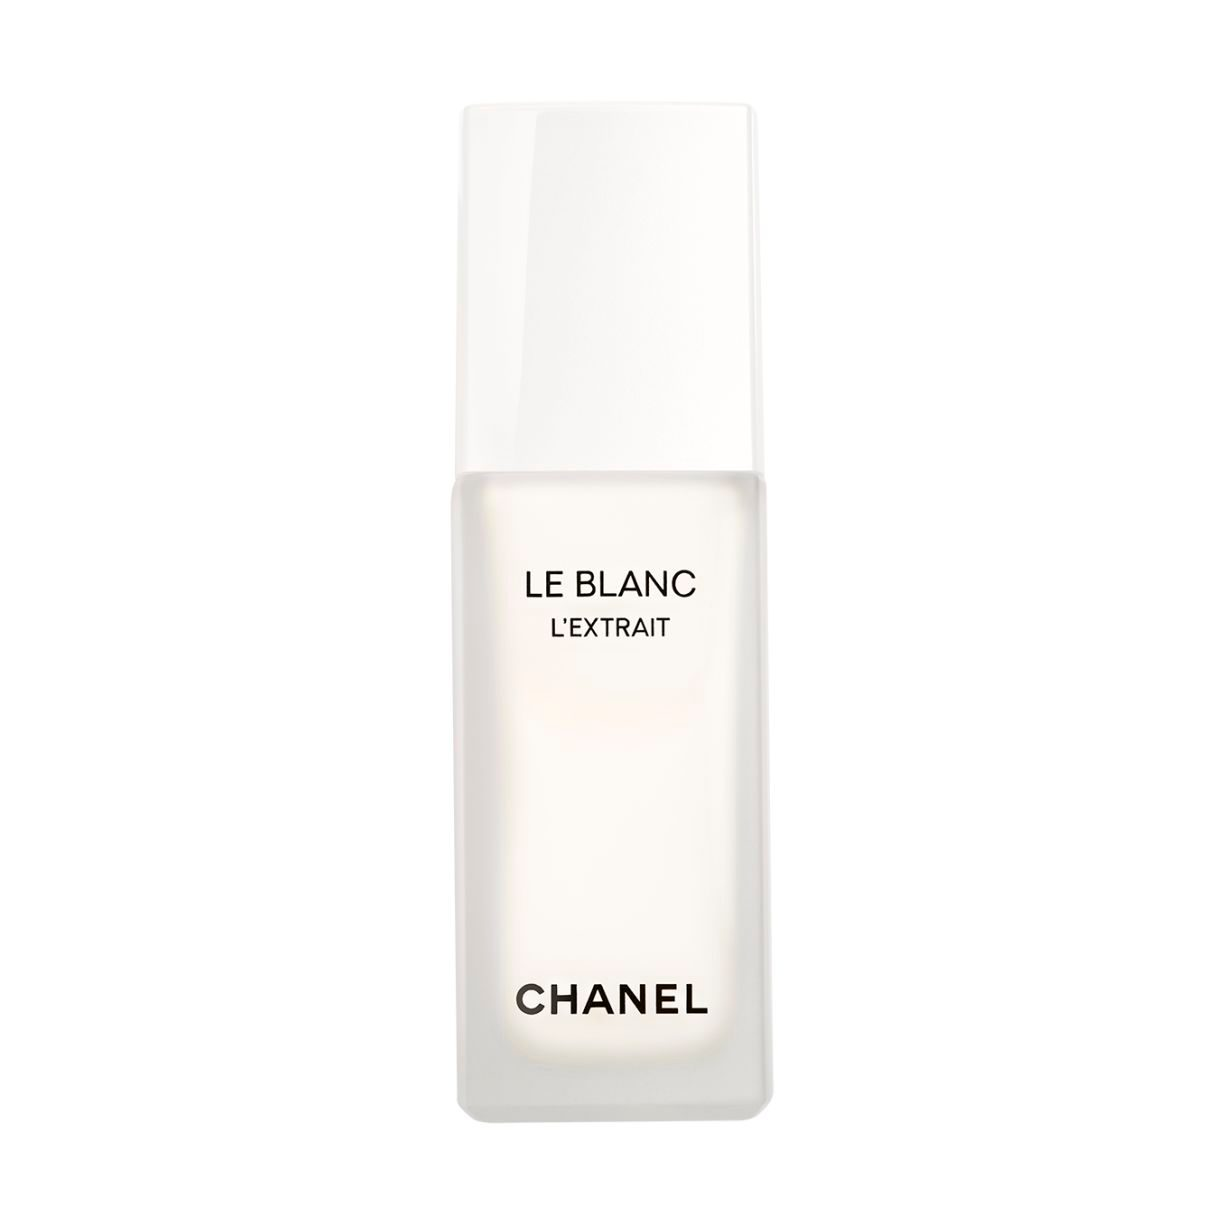 LE BLANC L'EXTRAIT - INTENSIVE YOUTH WHITENING TREATMENT